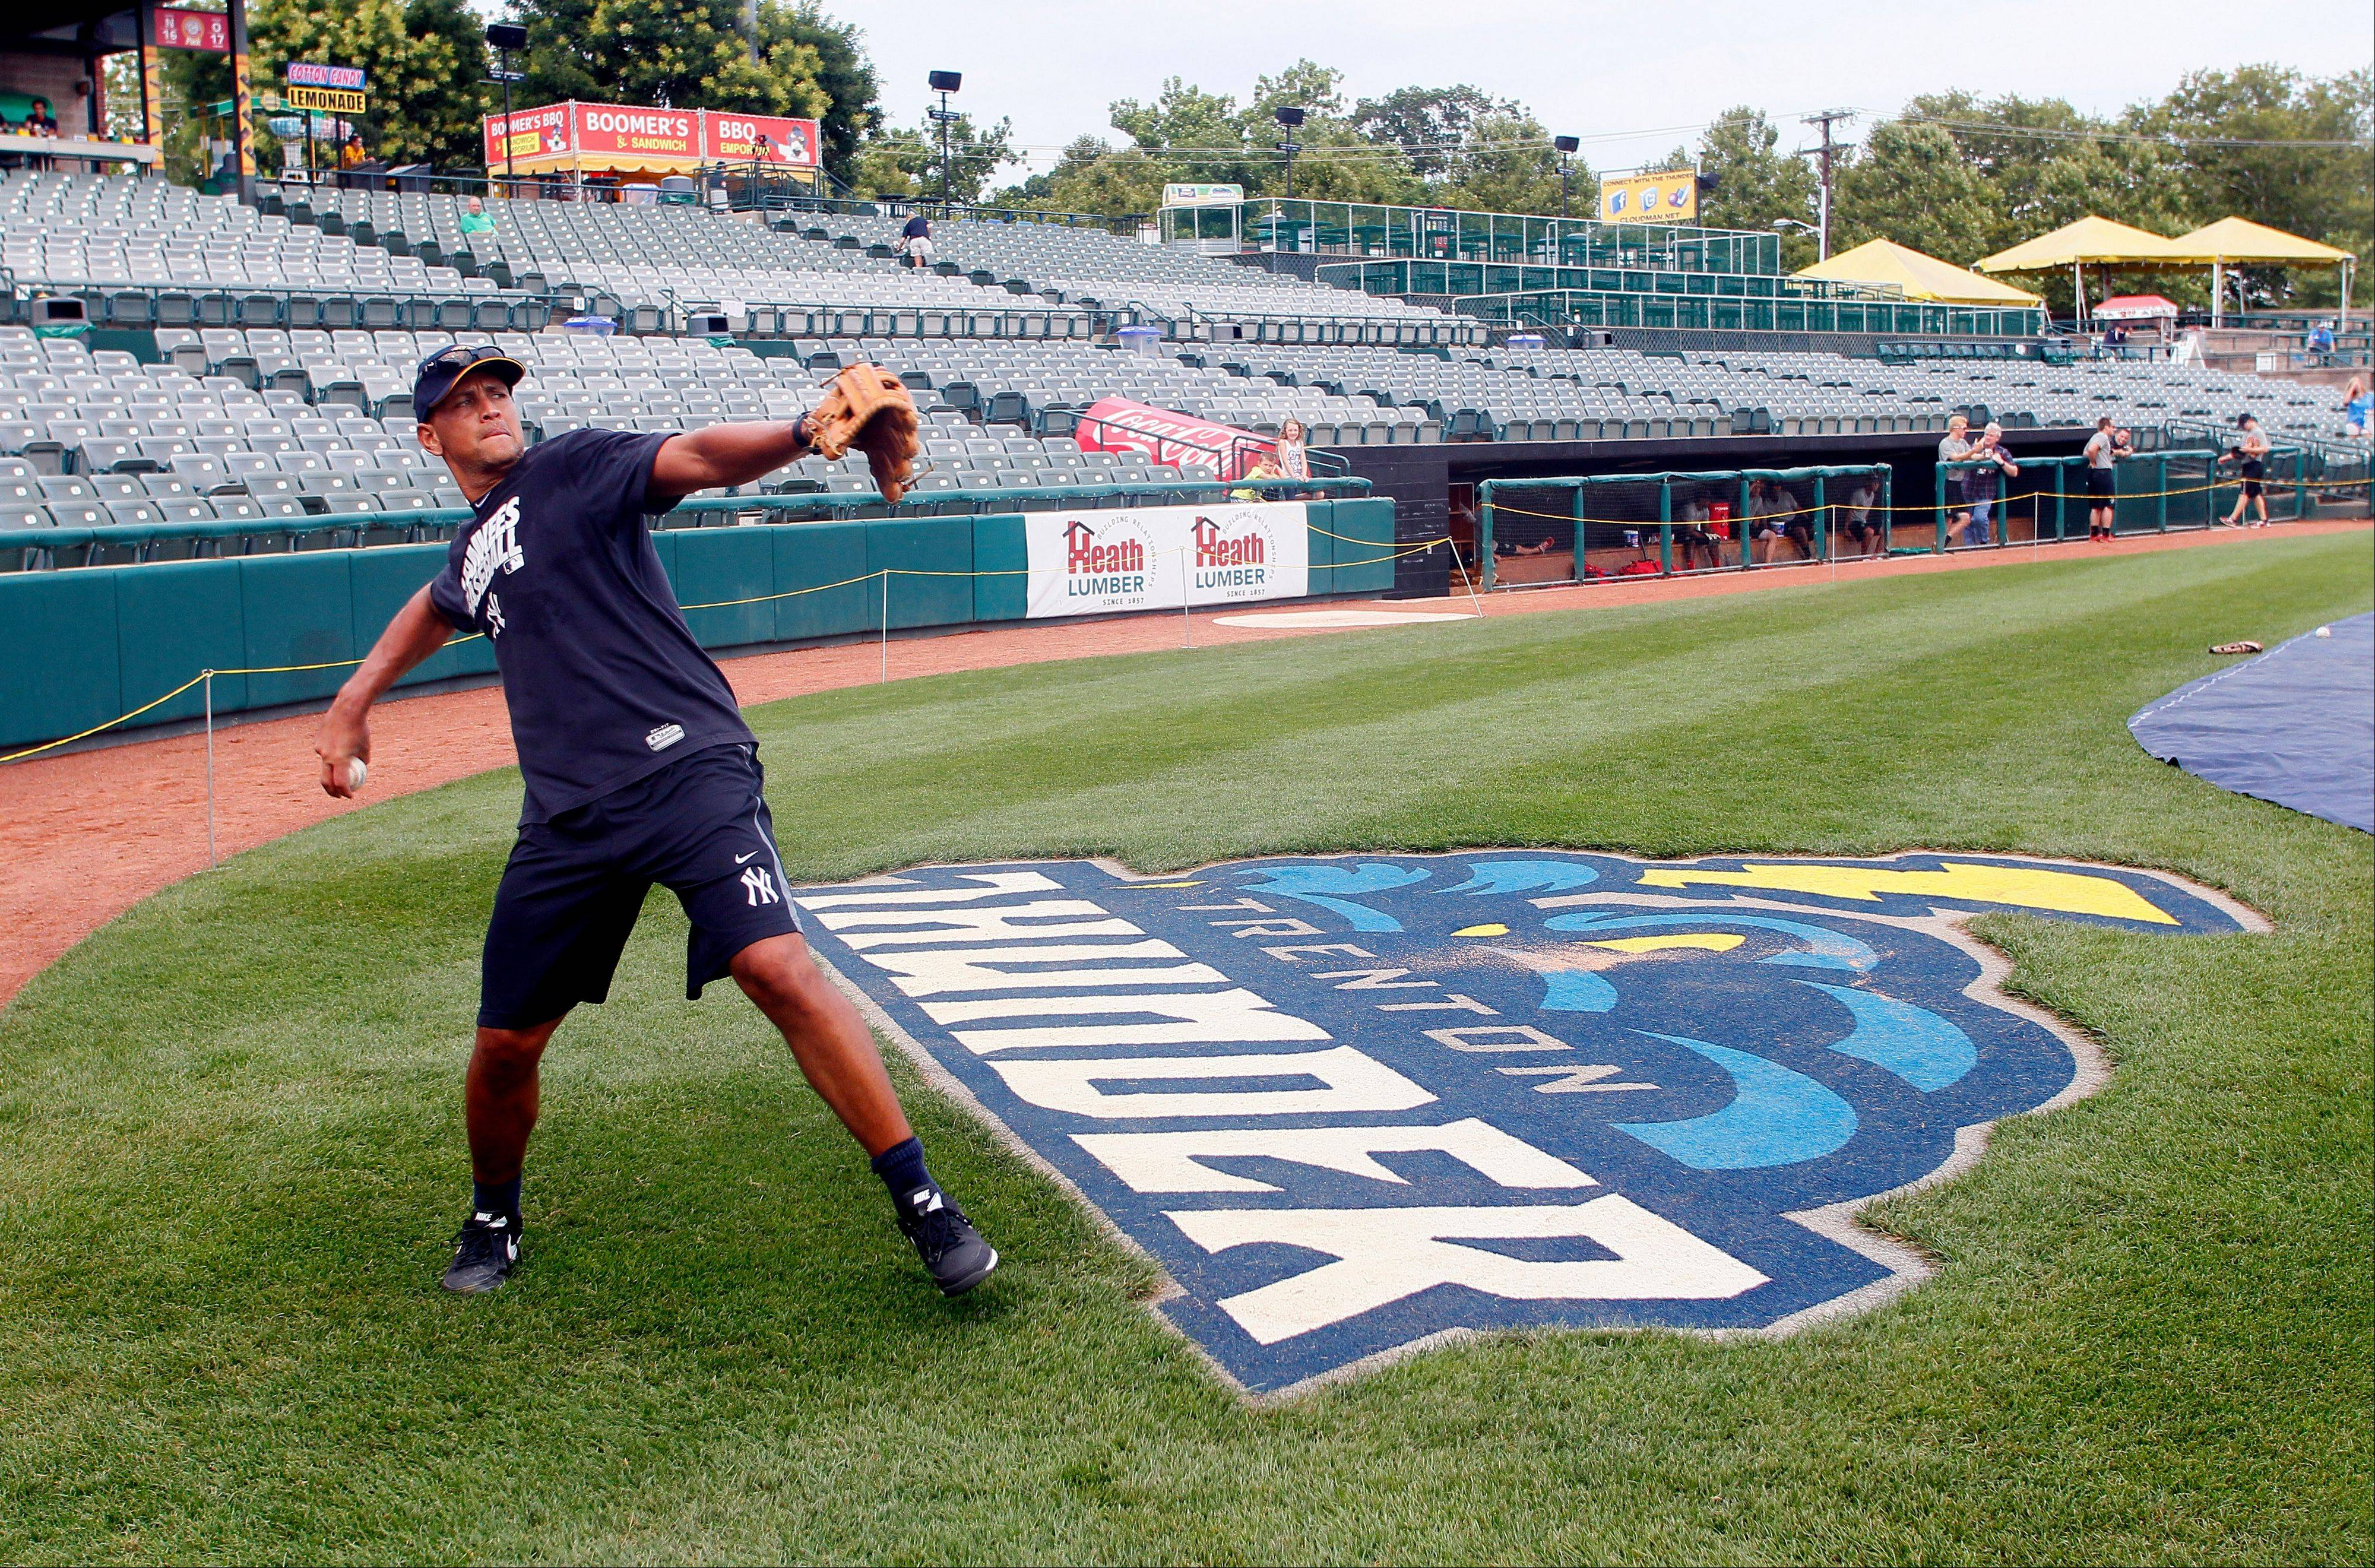 New York Yankees' Alex Rodriguez warms up before the start of a Class AA baseball game with the Trenton Thunder against the Reading Phillies, Friday, Aug. 2, 2013, Trenton, N.J. (AP Photo/Tom Mihalek)